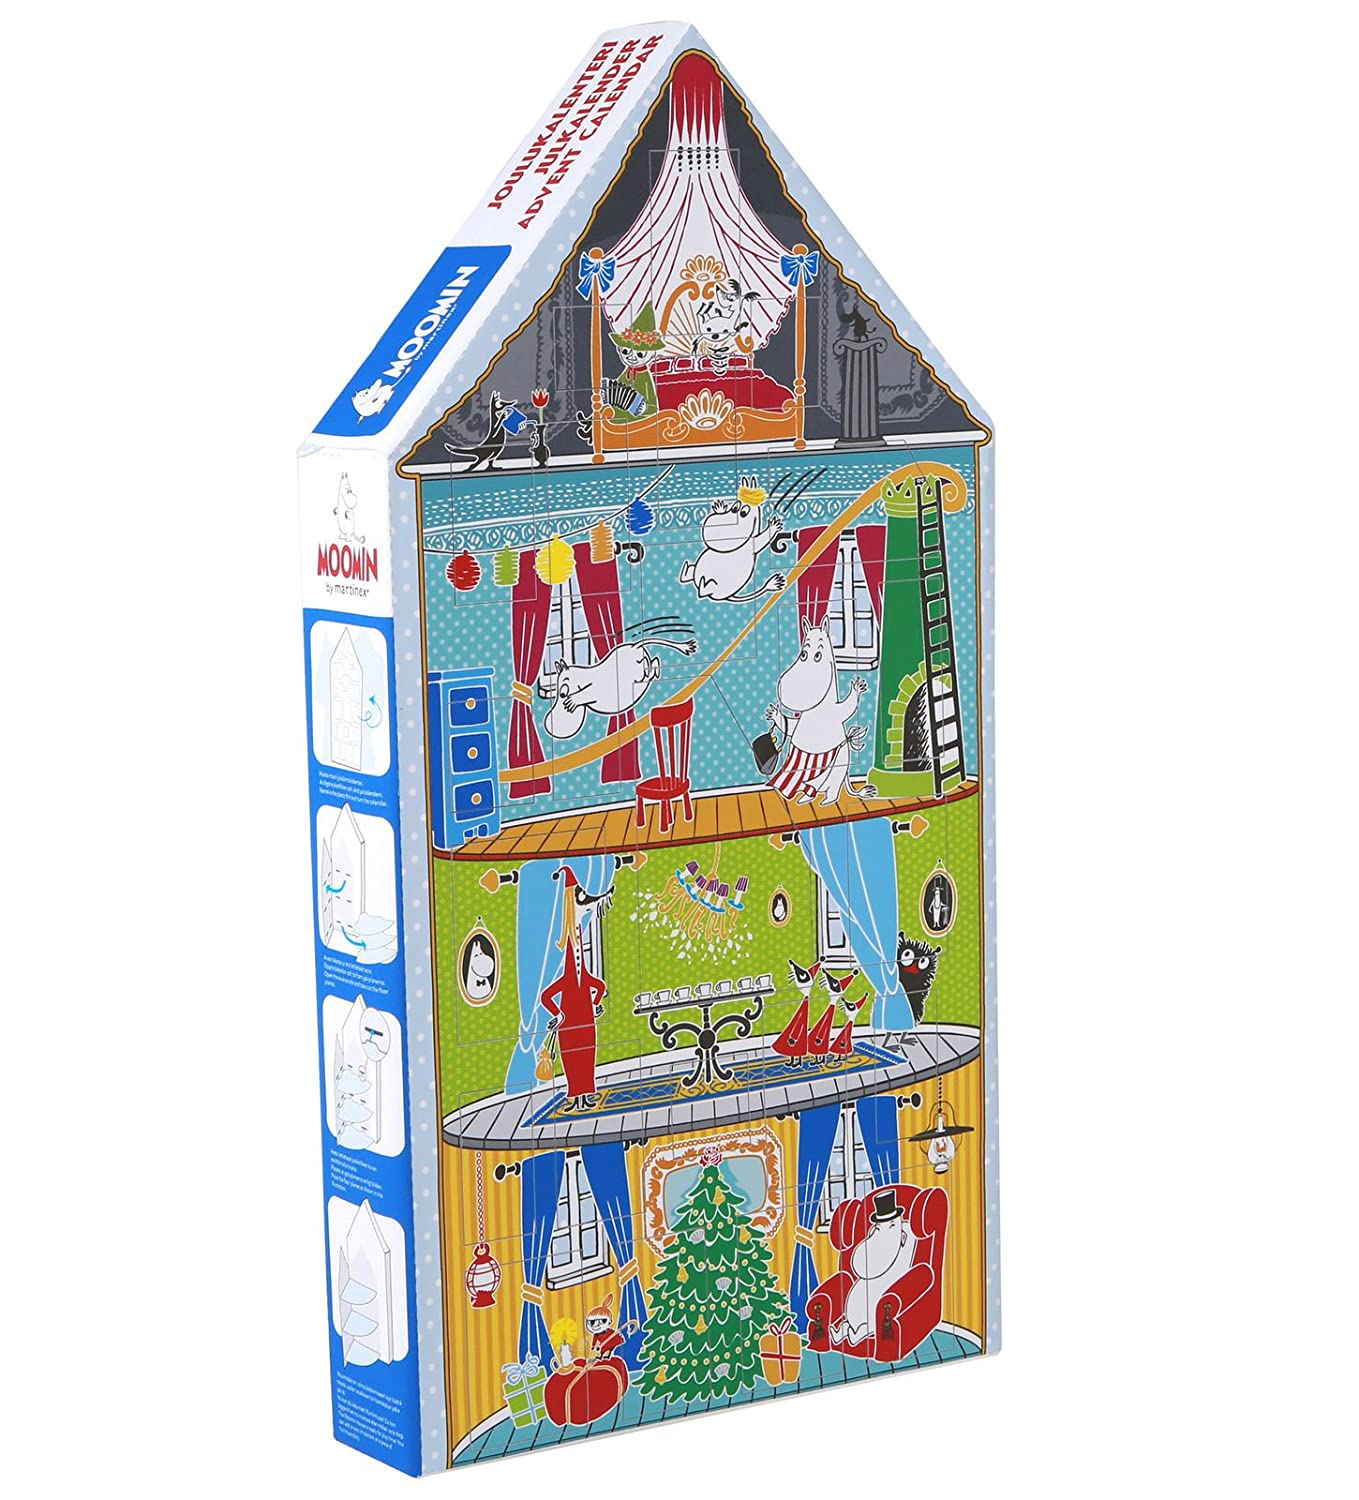 benefit joulukalenteri 2018 Amazon.com: Moomin Christmas Advent Calendar with Toys Moomin  benefit joulukalenteri 2018